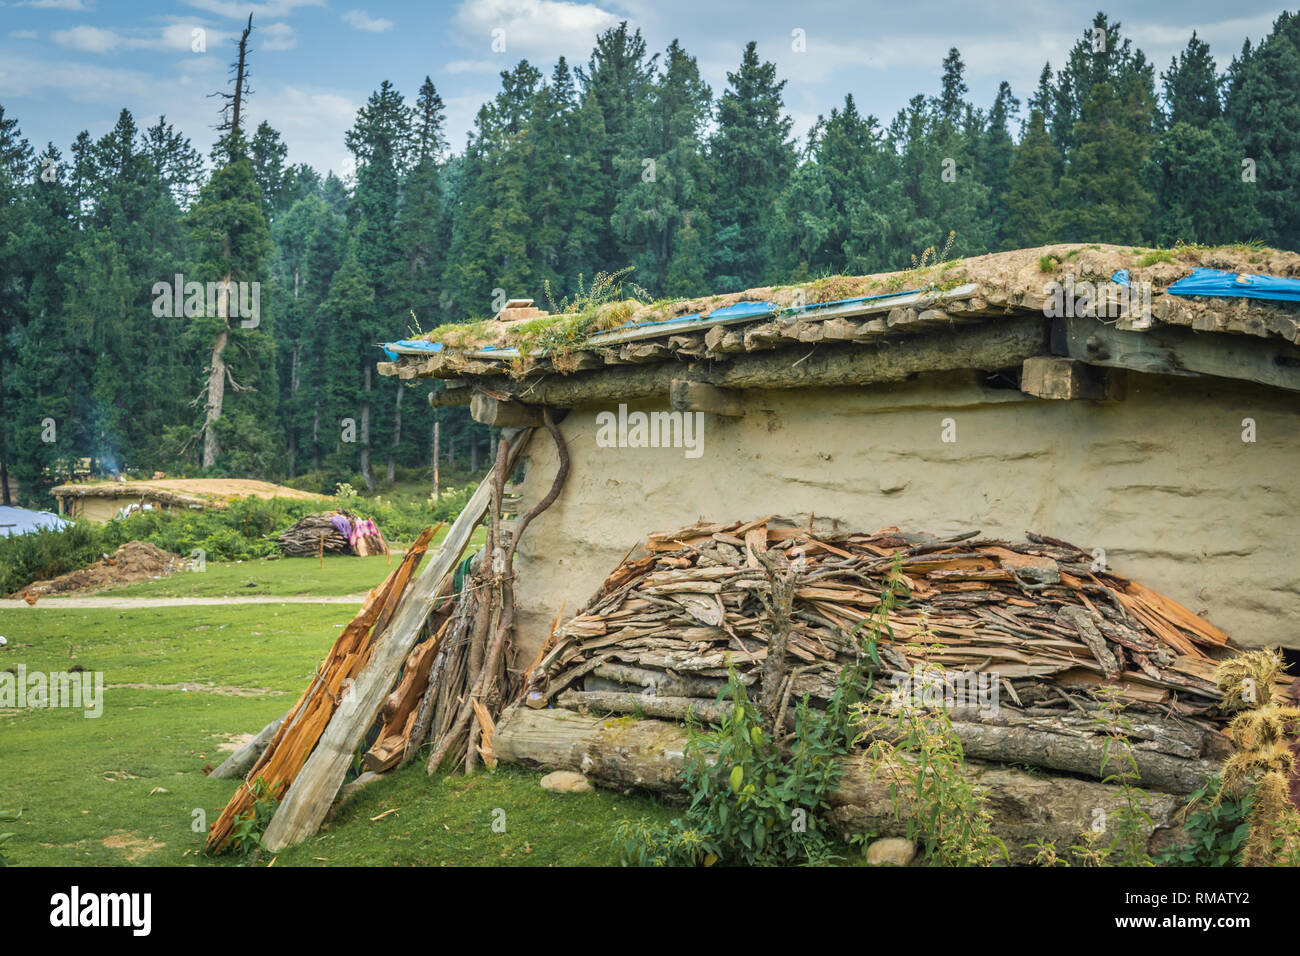 A pile of firewood outside a cabin house in a meadow in Kashmir, India. - Stock Image